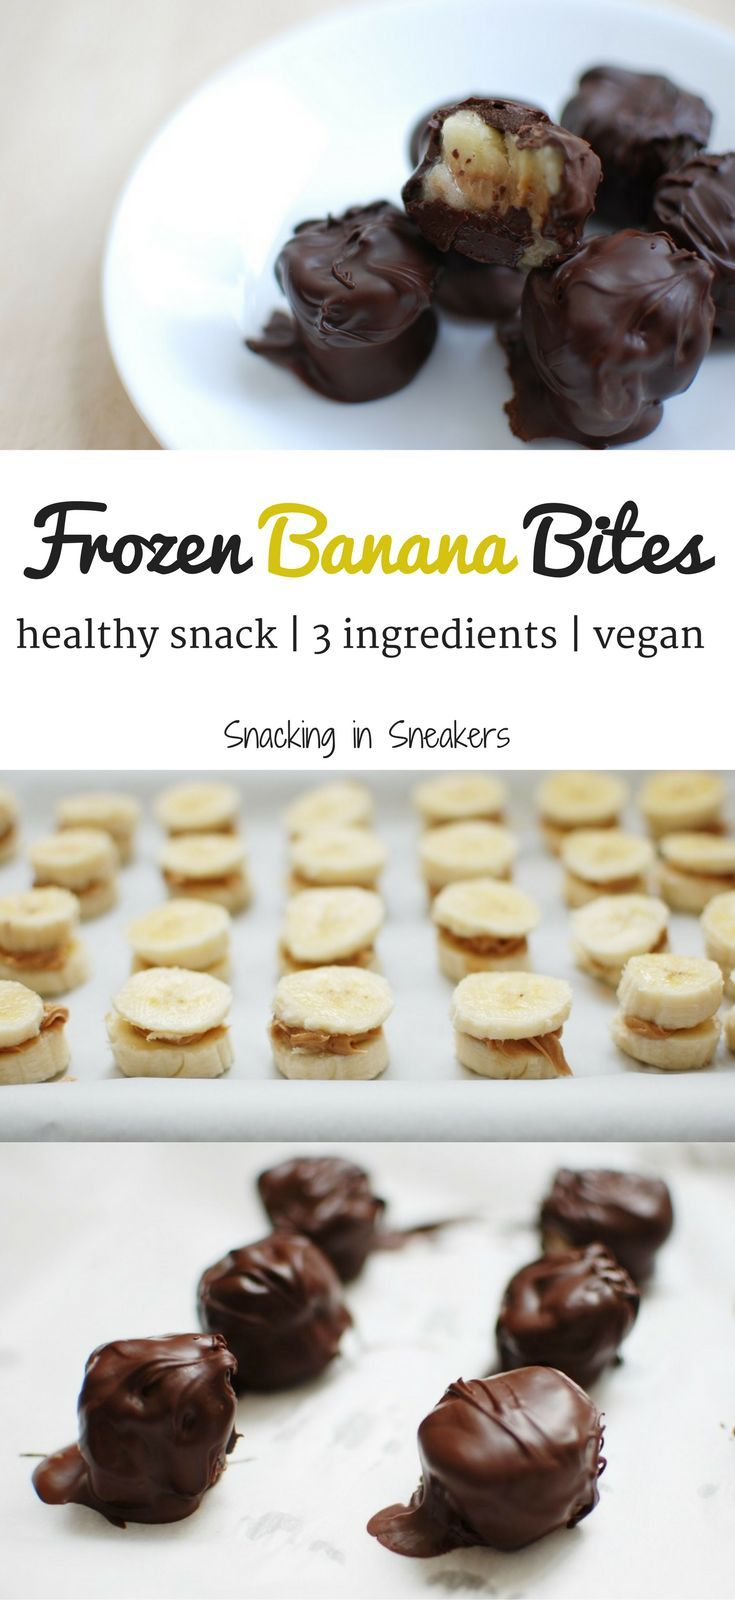 These frozen banana bites made with peanut butter and dark chocolate are perfect when you're craving a sweet treat but want a healthy option! Packed with potassium & healthy fats. | healthy banana dessert | healthy frozen banana bites | banana dessert rec